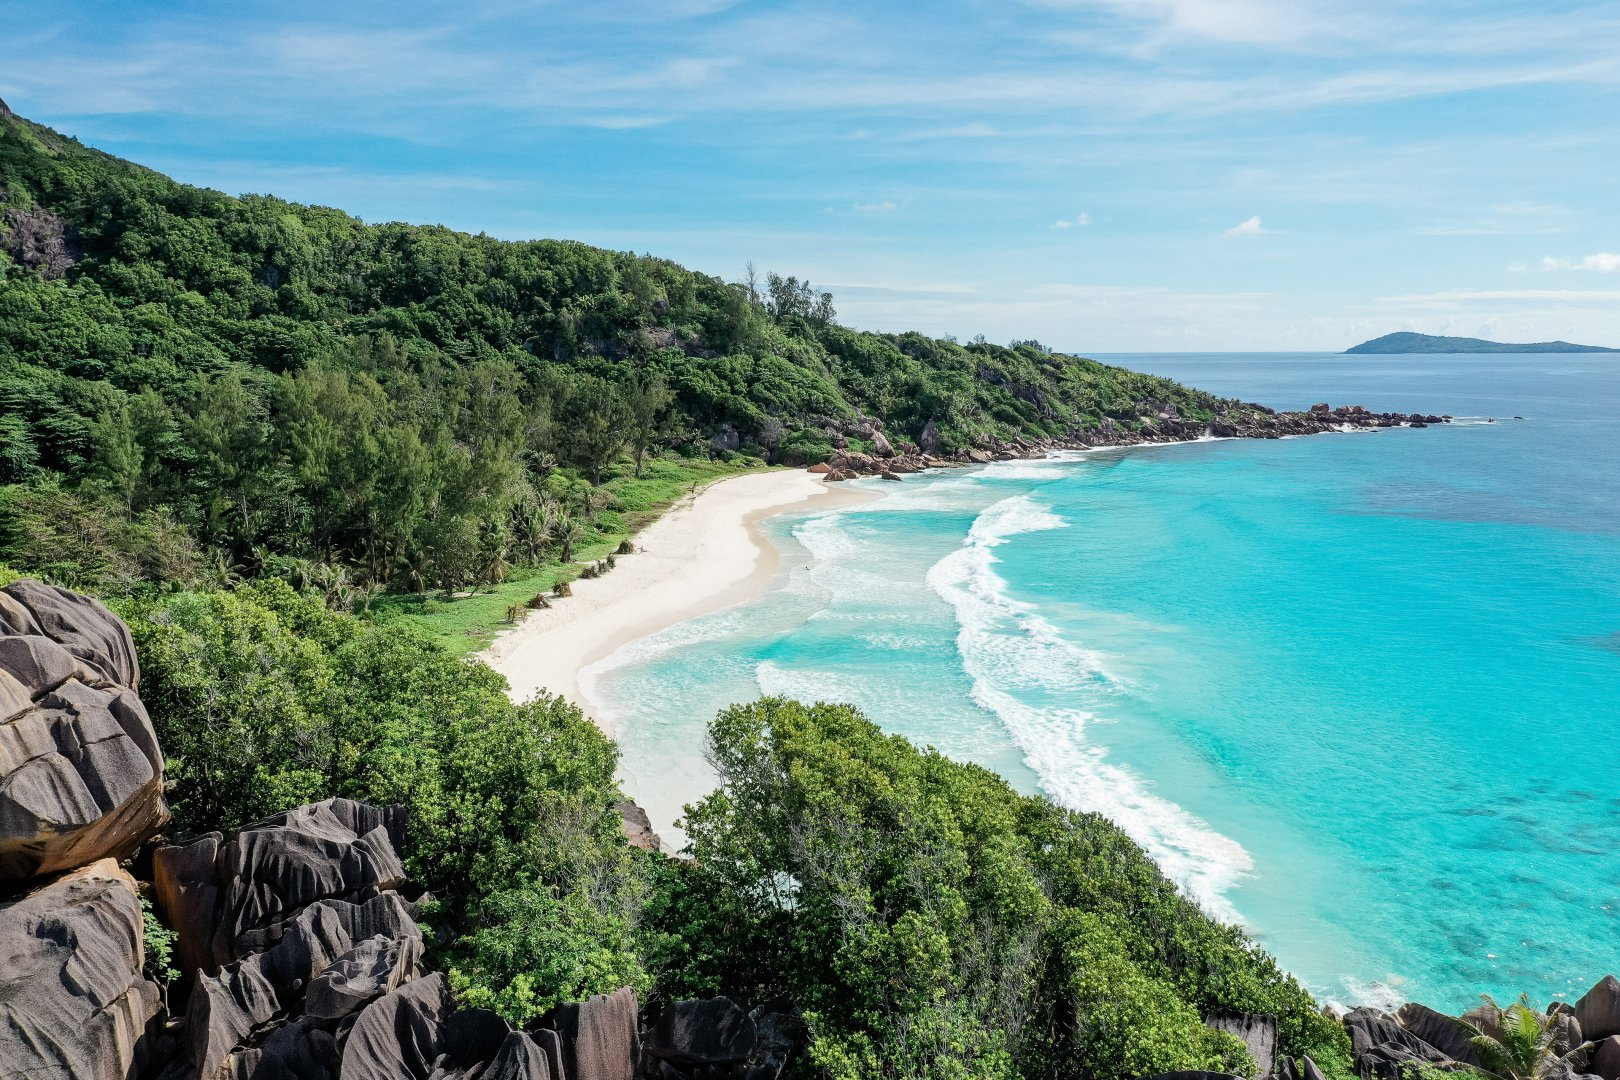 Body of water Coast Nature Beach Sea Shore Natural landscape Coastal and oceanic landforms Vegetation Water Ocean Bay Promontory Tropics Sky Cove Turquoise Headland Water resources Vacation Bight Inlet Tourism Tree Cape Summer National park Landscape Caribbean Rock